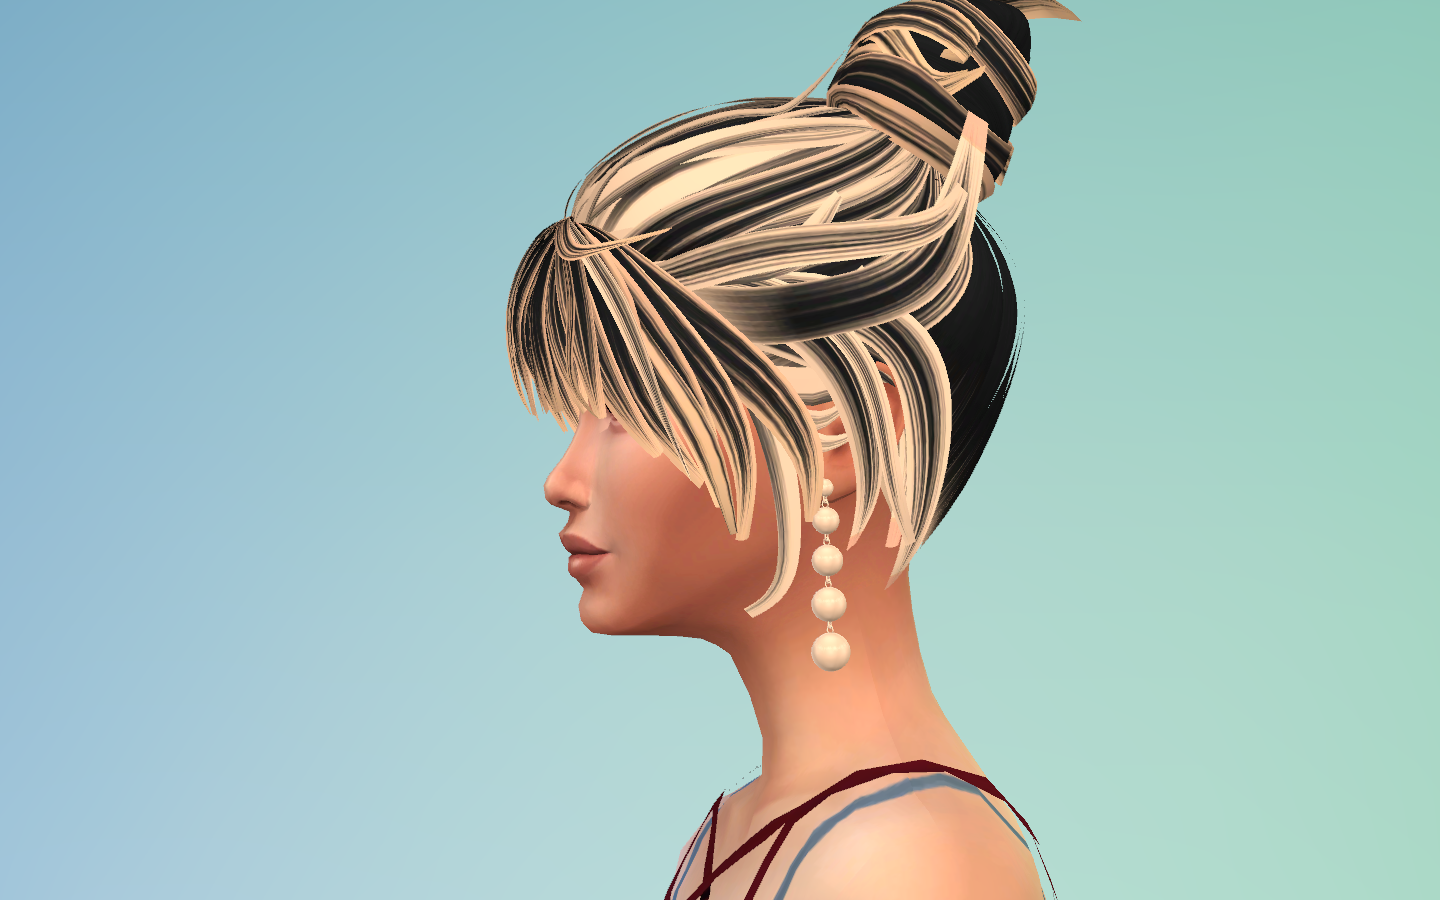 Gelost Sims 4 Cc Verbuggt Answer Hq